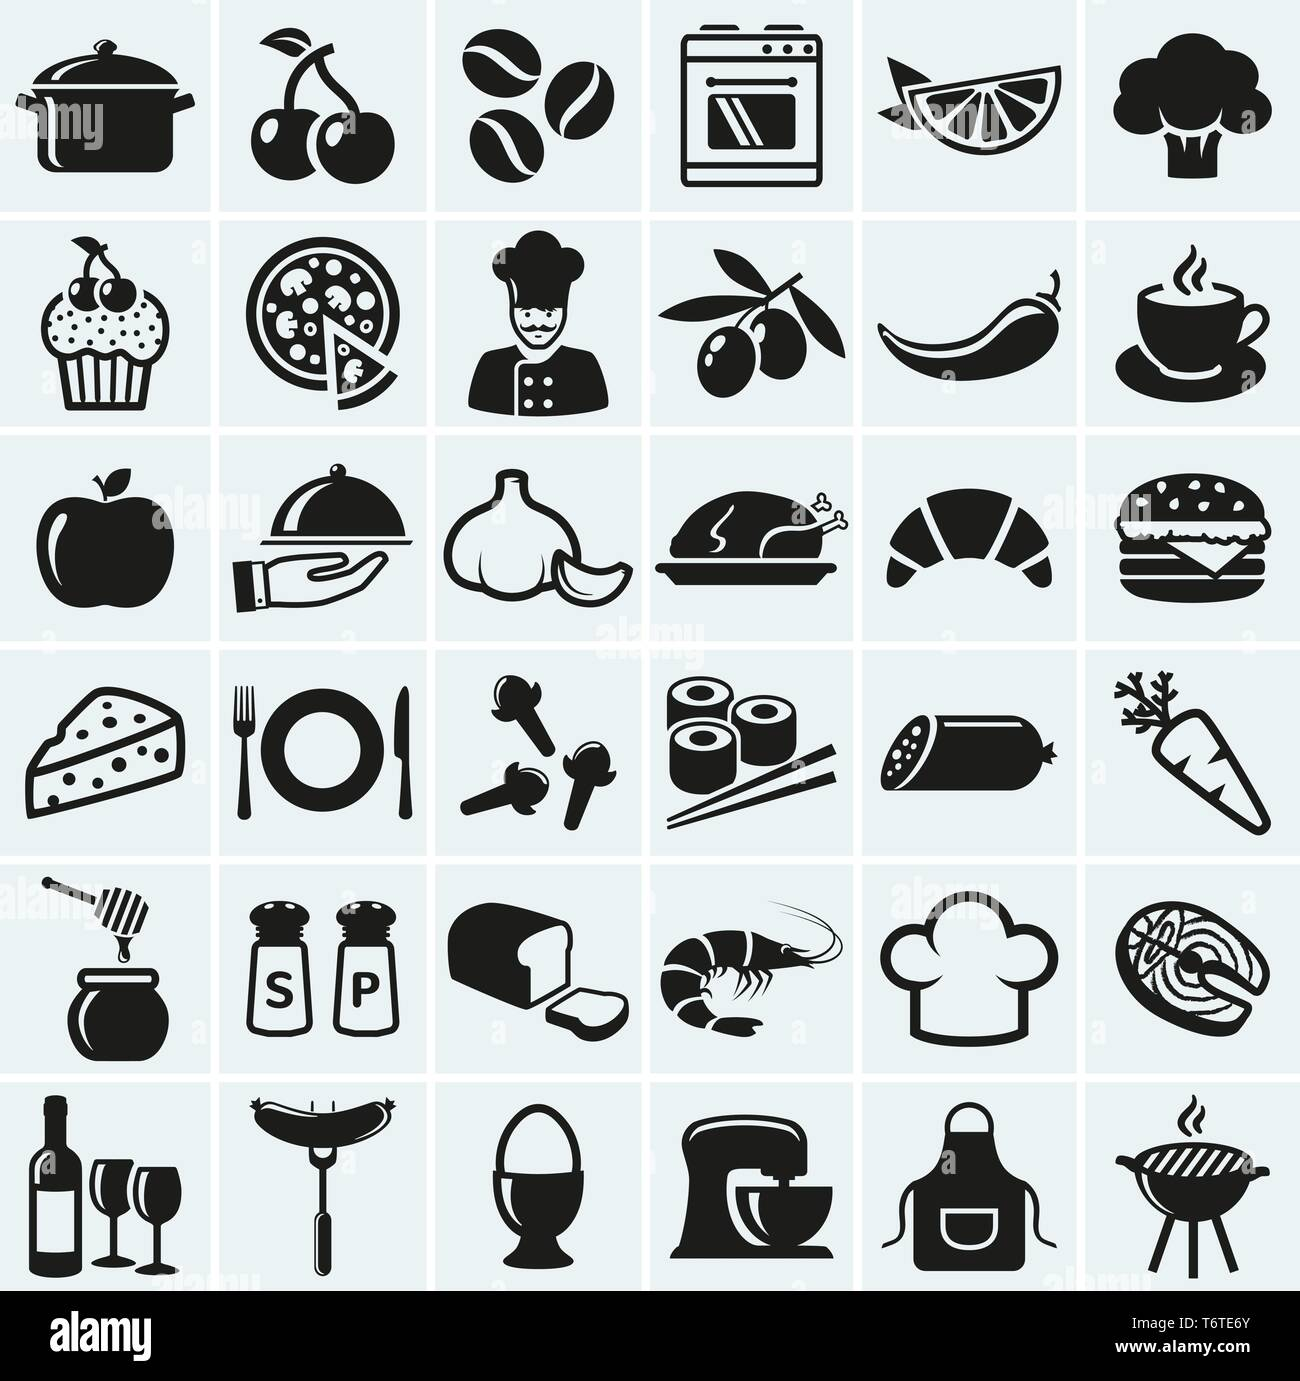 Food and cooking web icons. Set of black symbols for a culinary theme. Healthy and junk food, fruit and vegetables, spices, cooking utensils and more. - Stock Vector